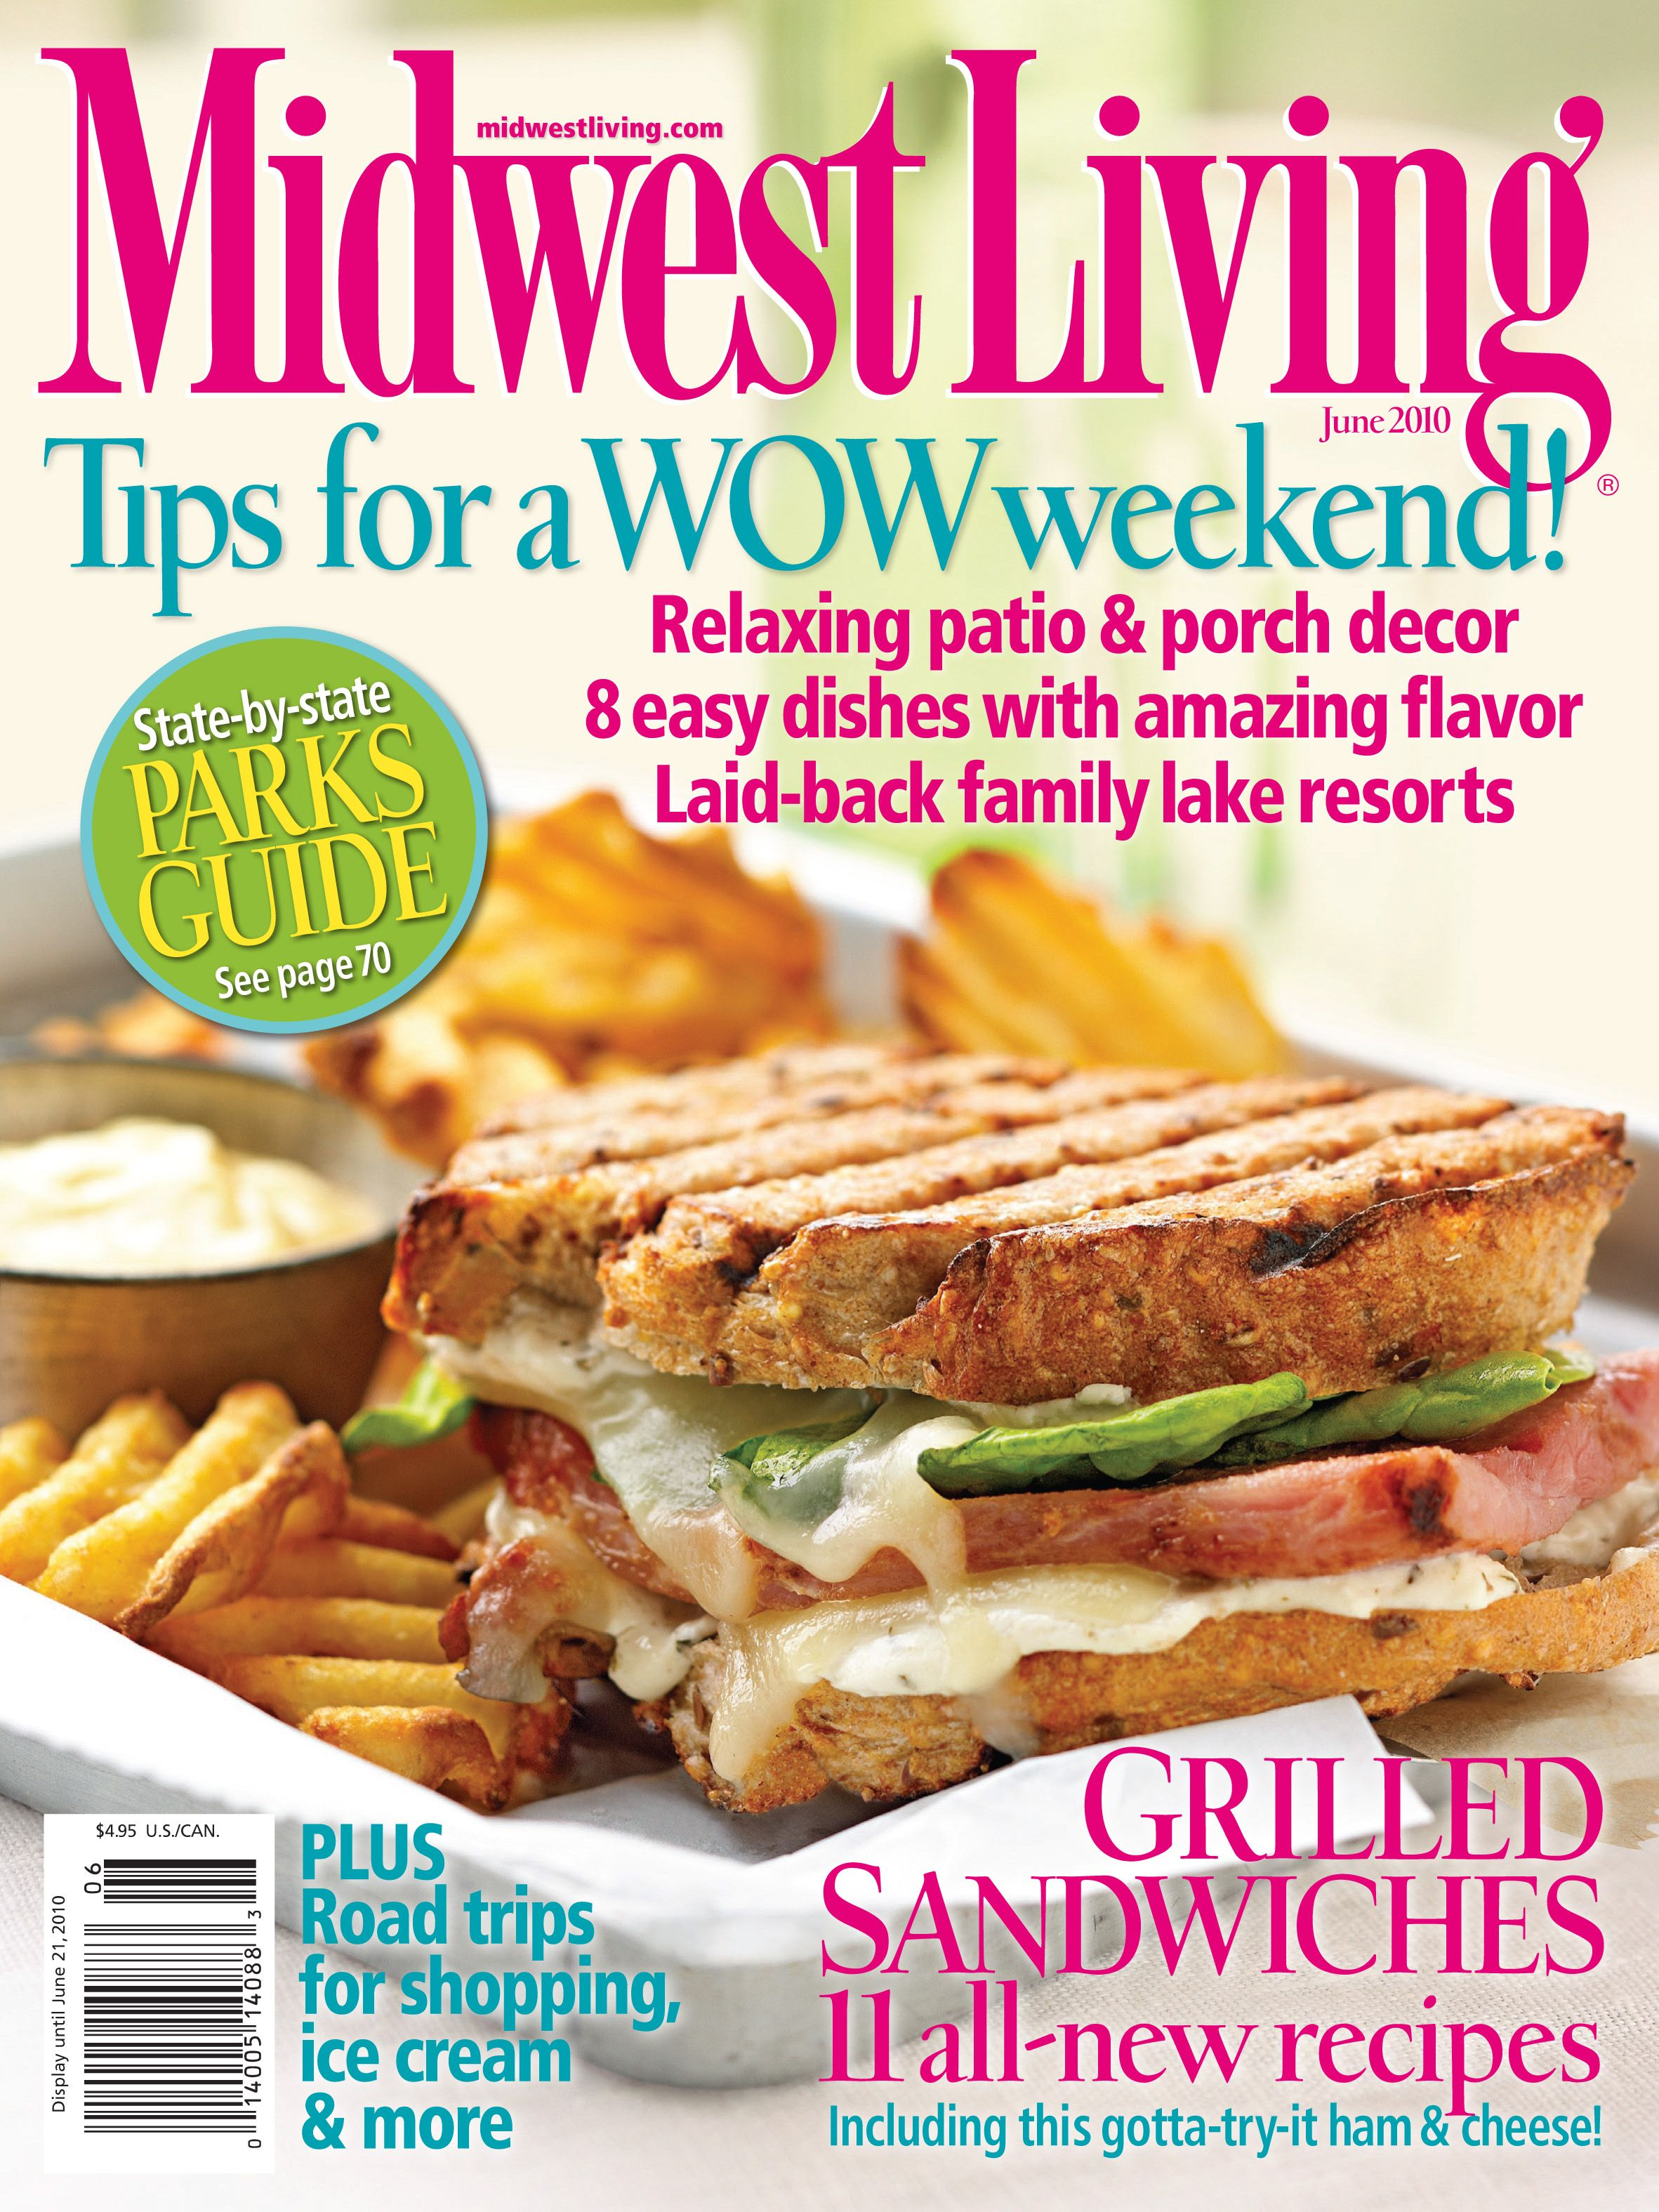 free midwest living magazine subscription | midwest living magazine